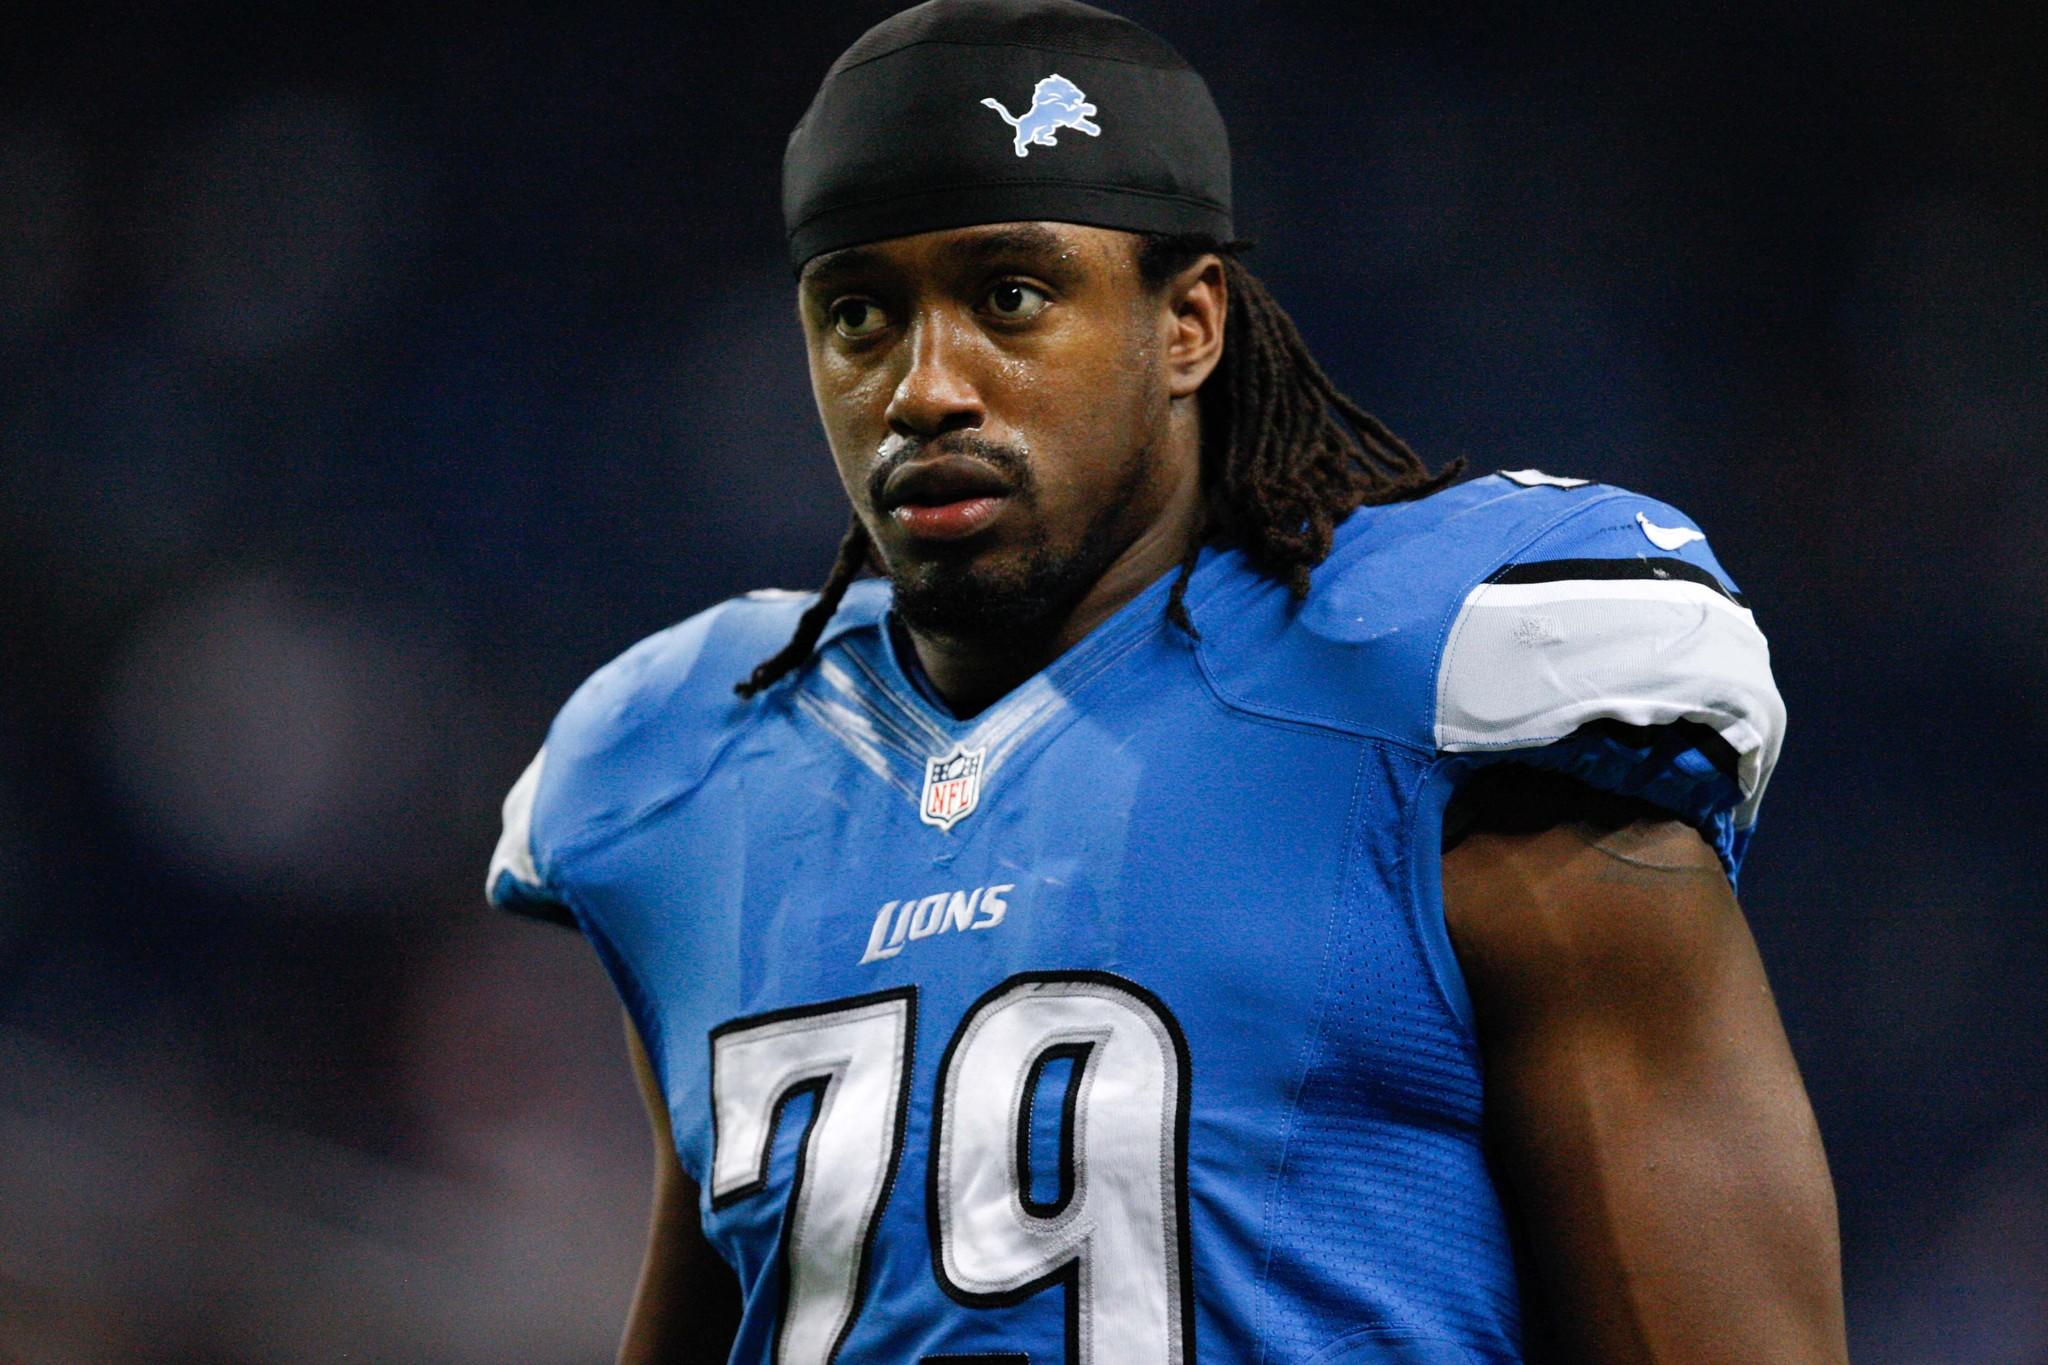 Lions defensive end Willie Young in 2013.